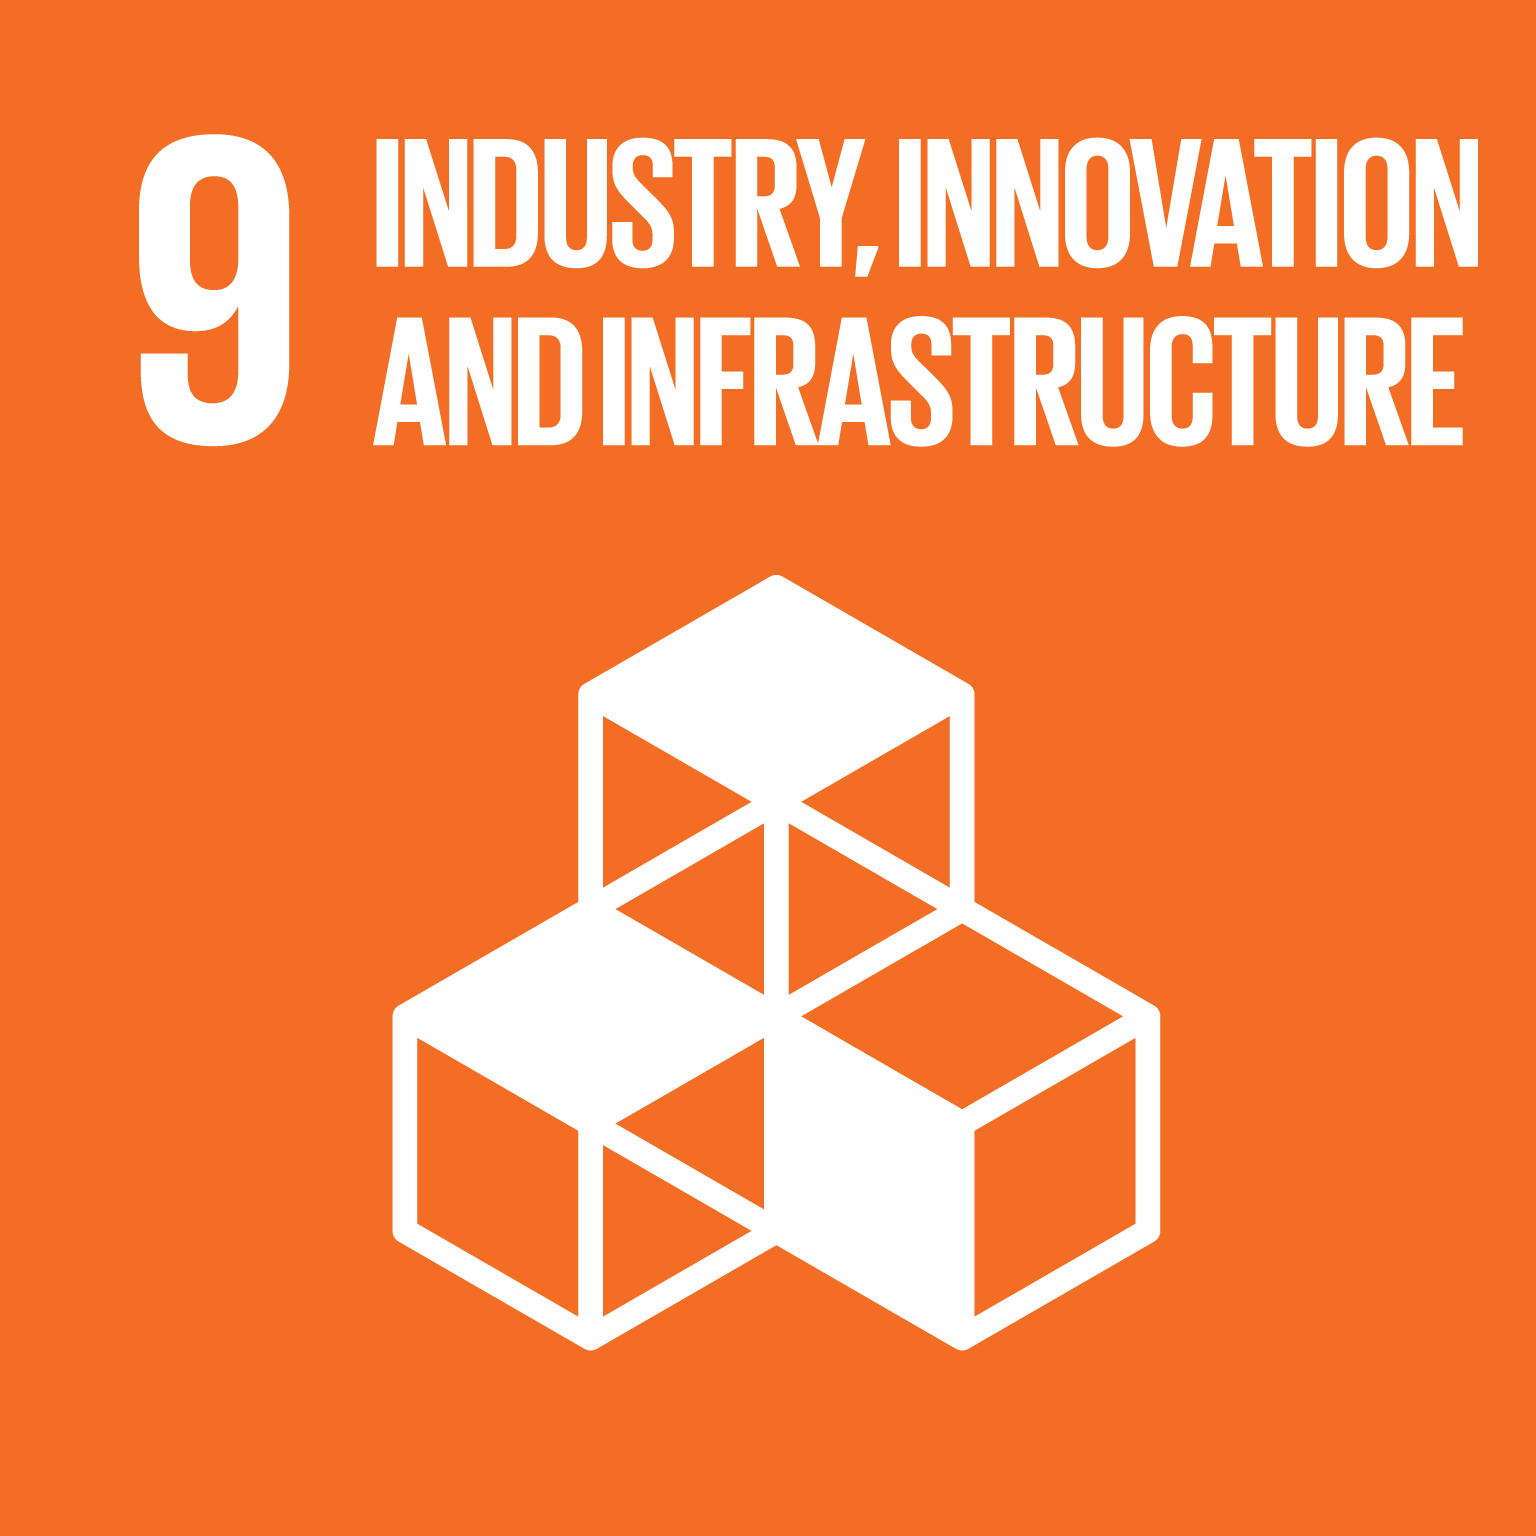 Goal 09: Industry Innovation and Infrastructure